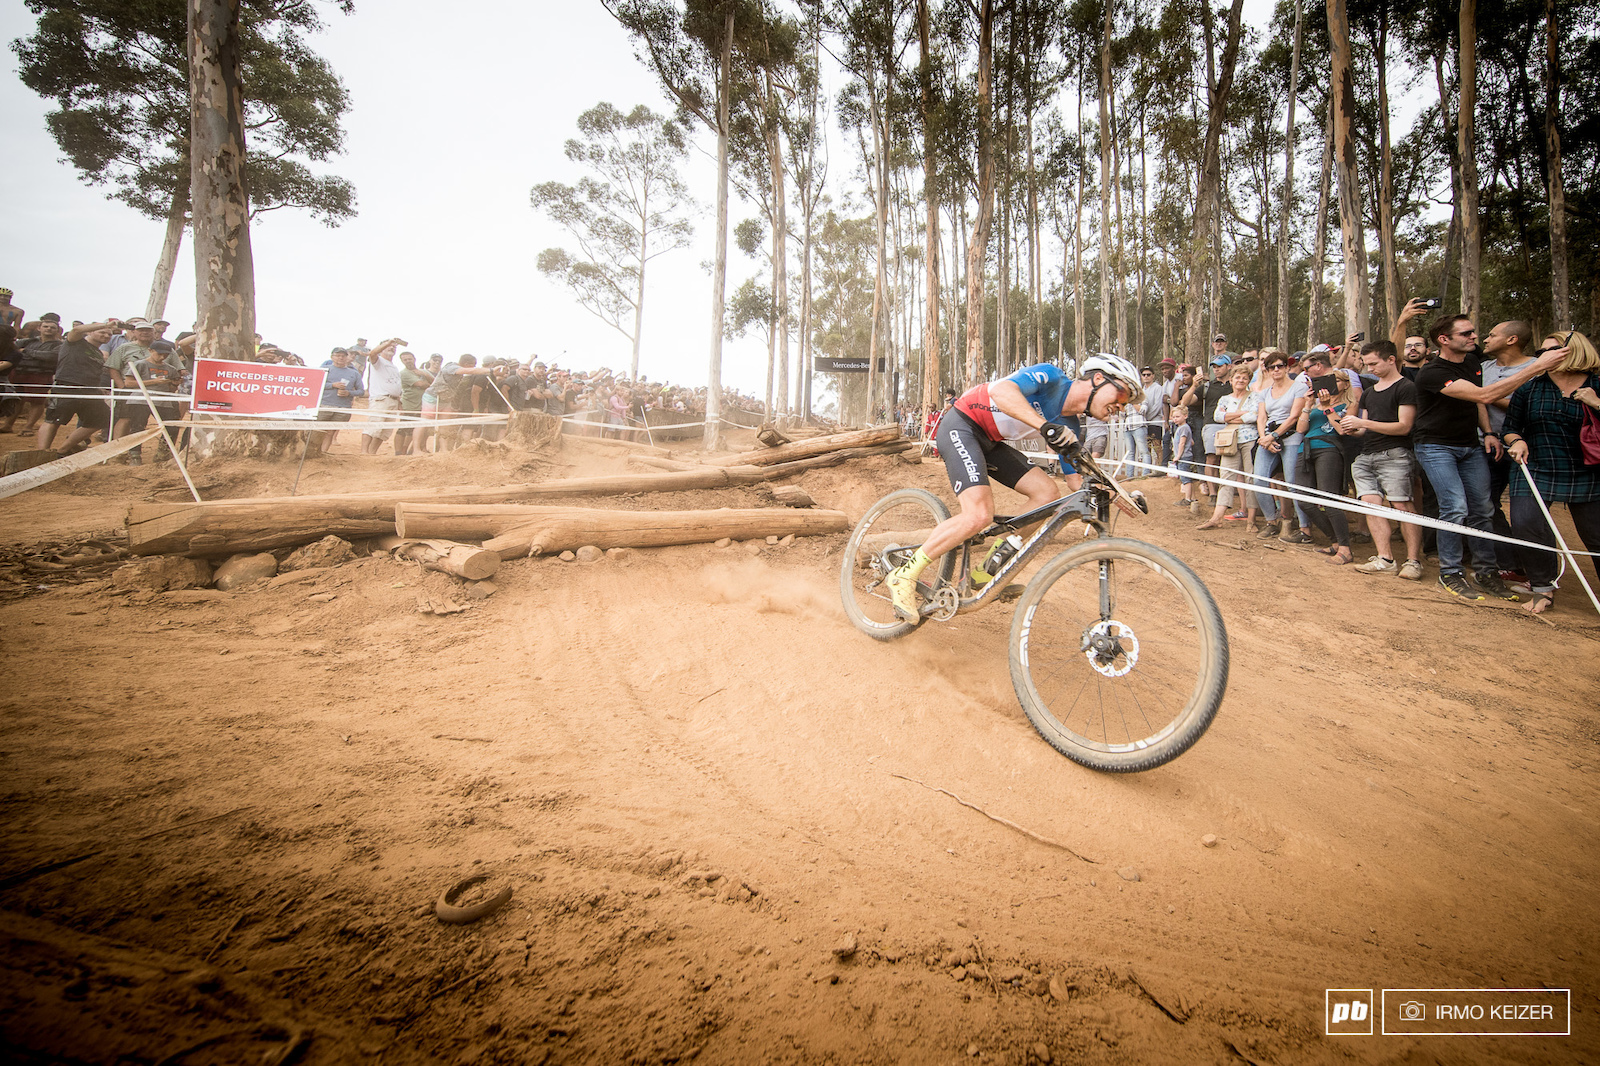 Maxime Marotte is one of the fast Frenchies challenging Nino Schurter s supremacy in mountainbiking. Up untill the very last moment he was within inches of leaders Gaze and Schurter.